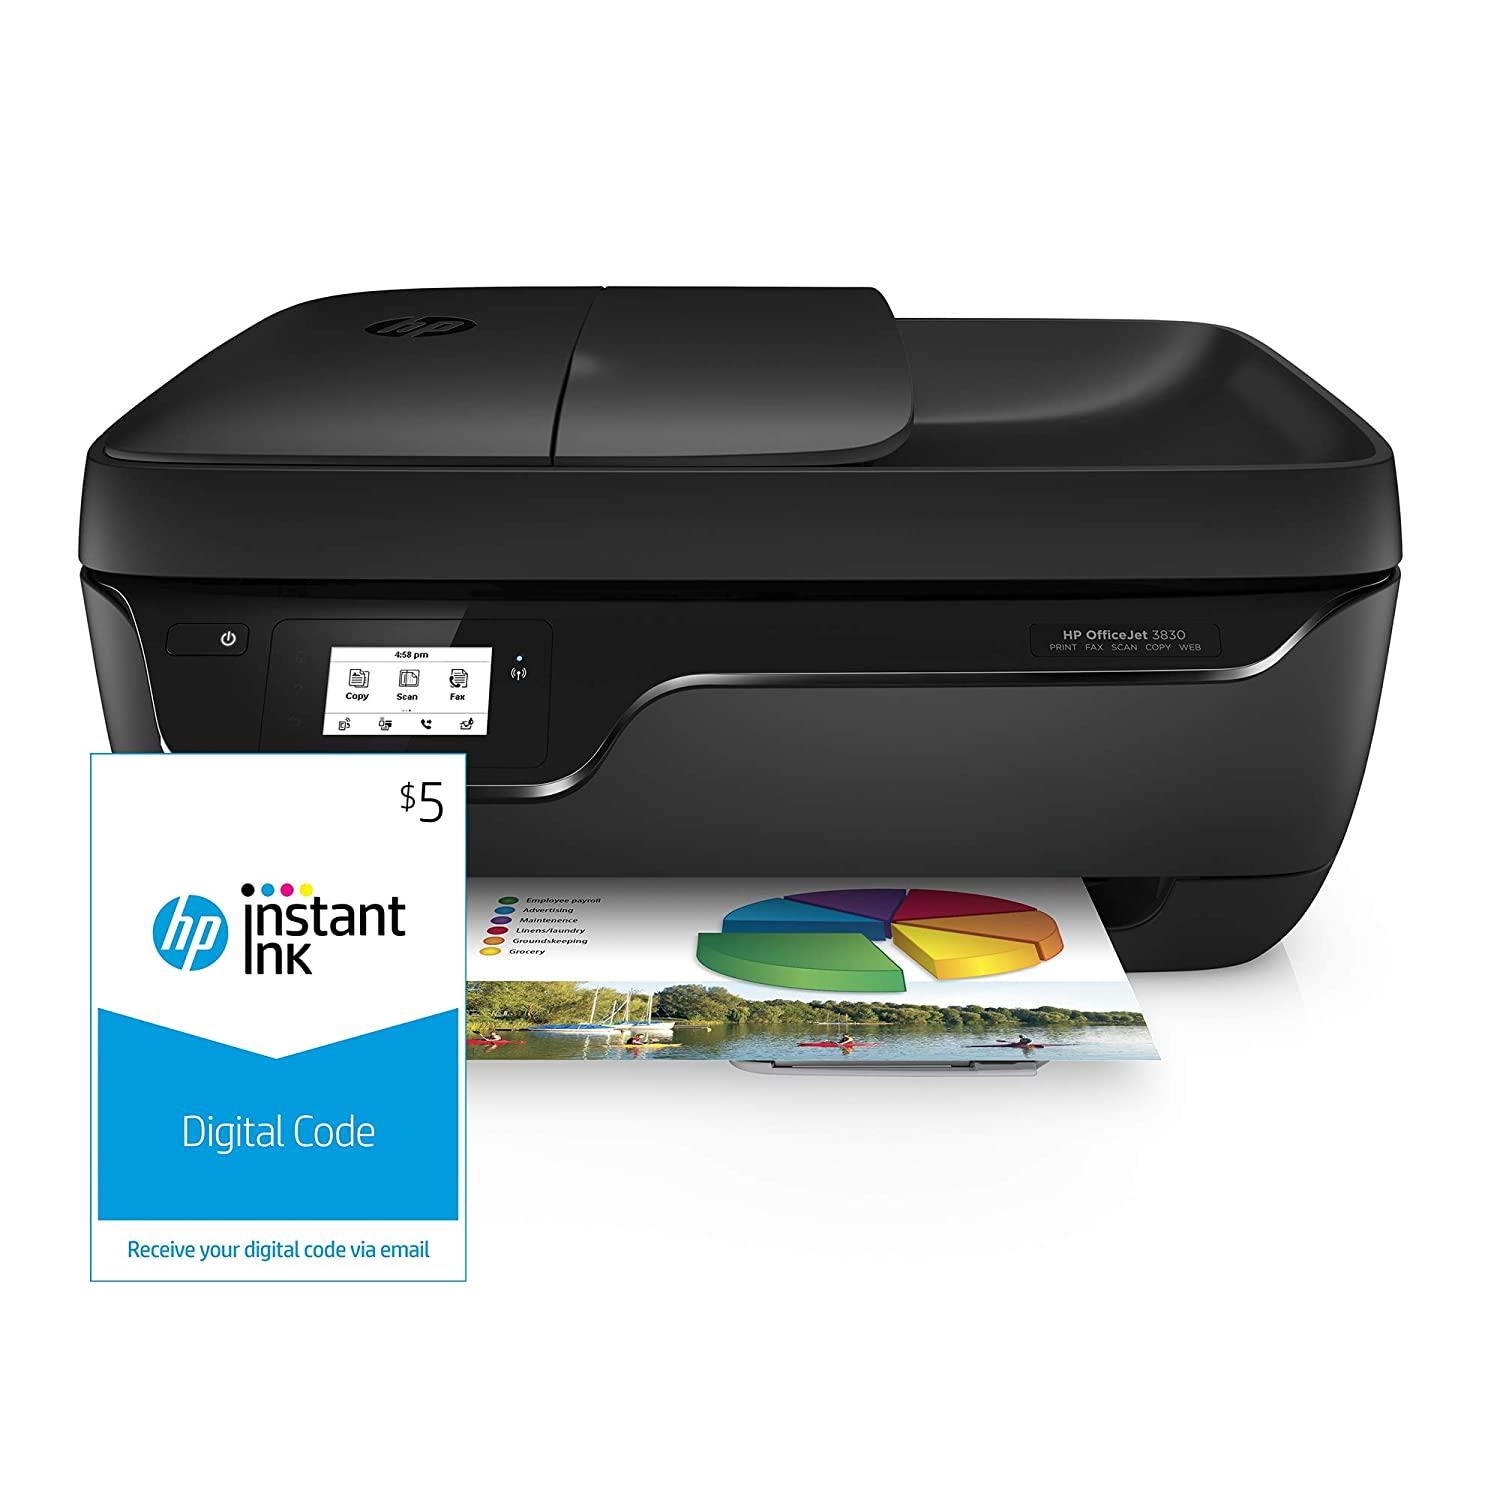 HP OfficeJet 3830 All-in-One Wireless Printer, HP Instant Ink & Amazon Dash Replenishment ready (K7V40A) and Instant Ink $5 Prepaid Code